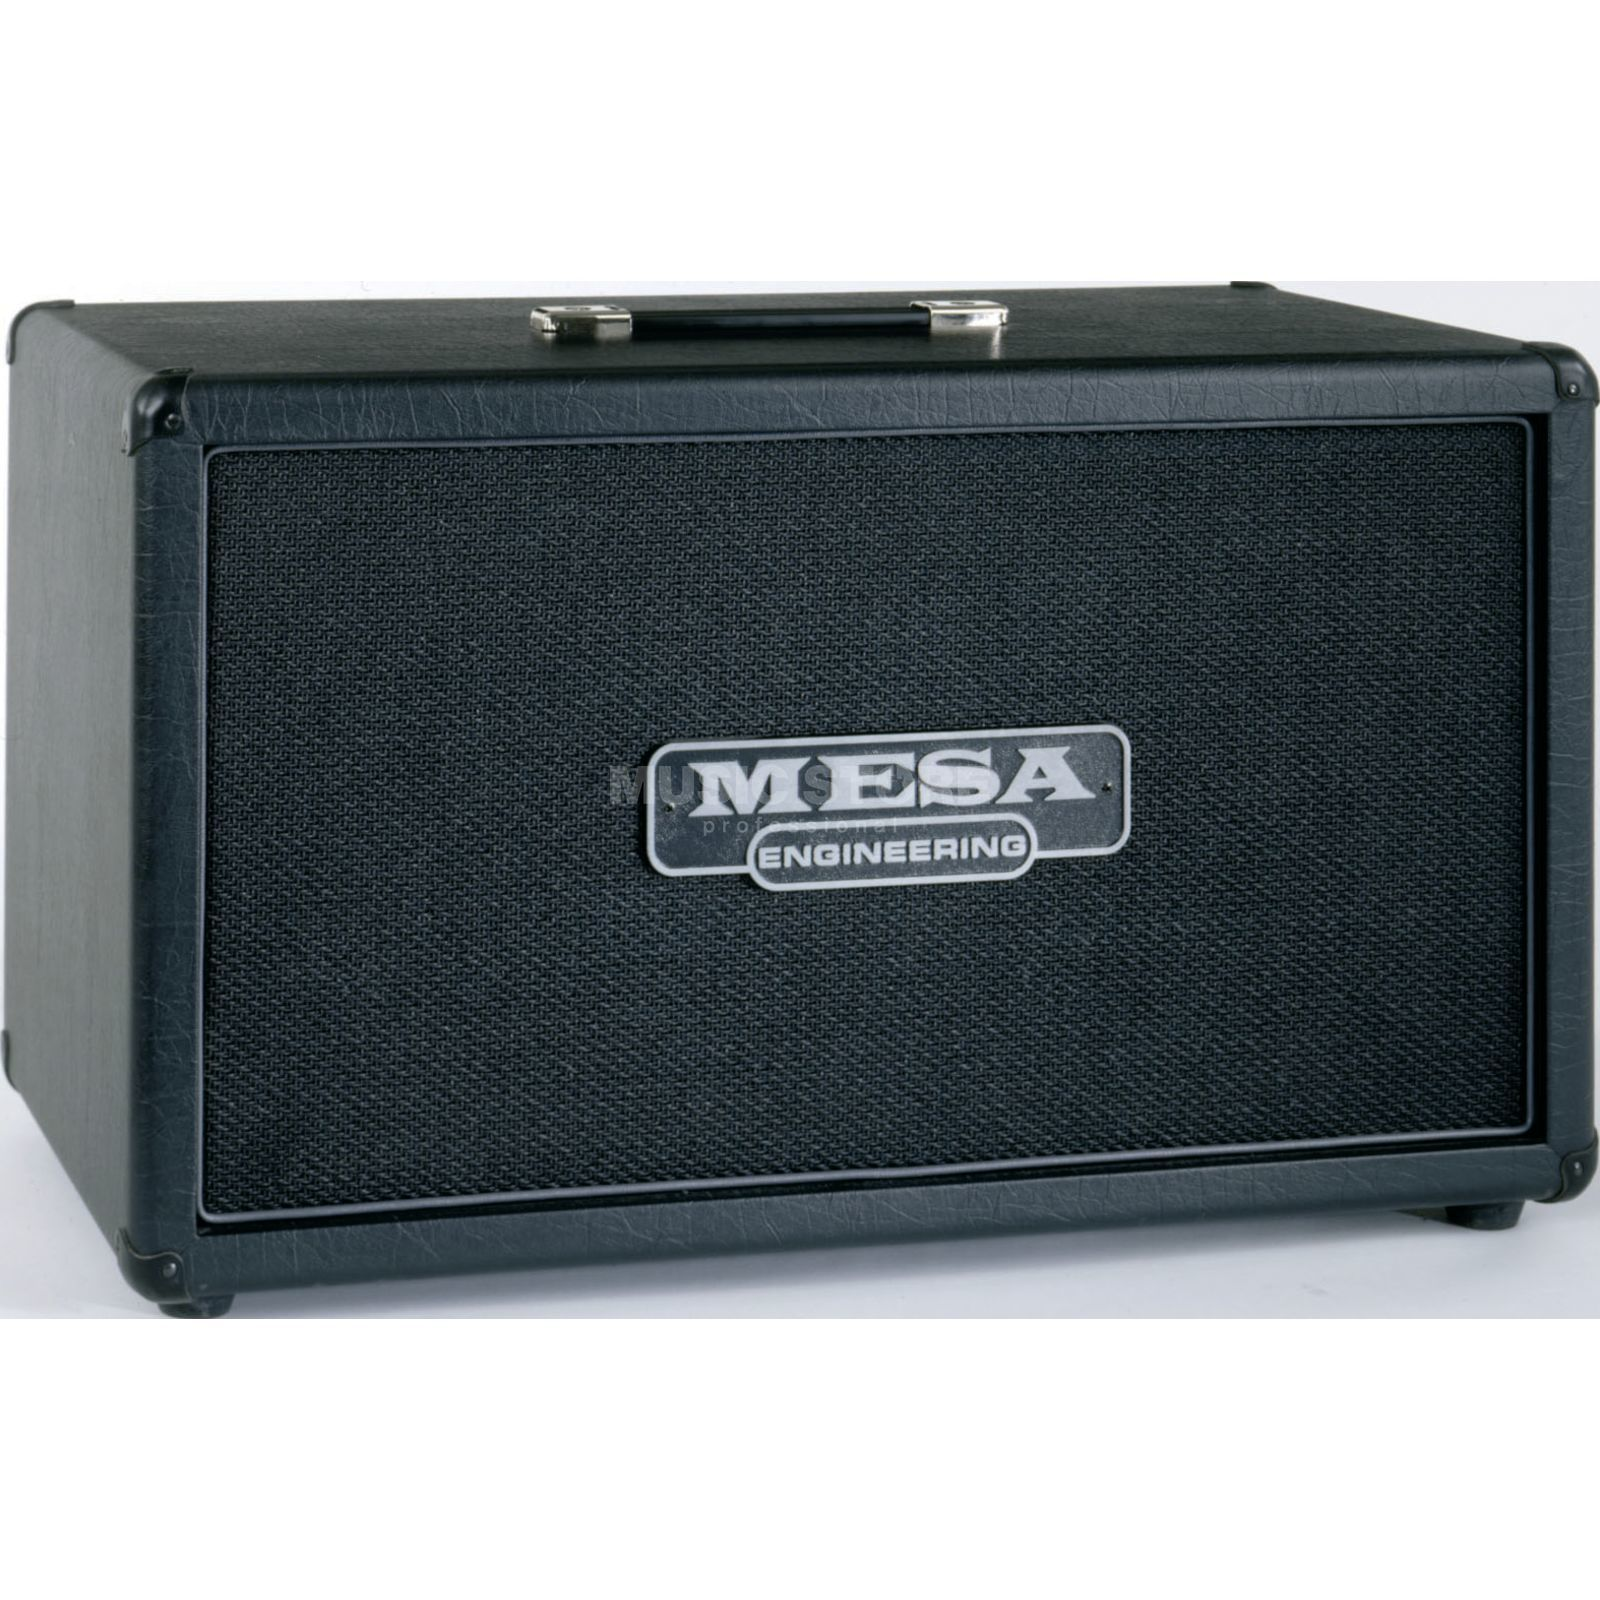 Mesa Boogie 2x12 Rectifier Guitar Extensio n Cabinet   Product Image